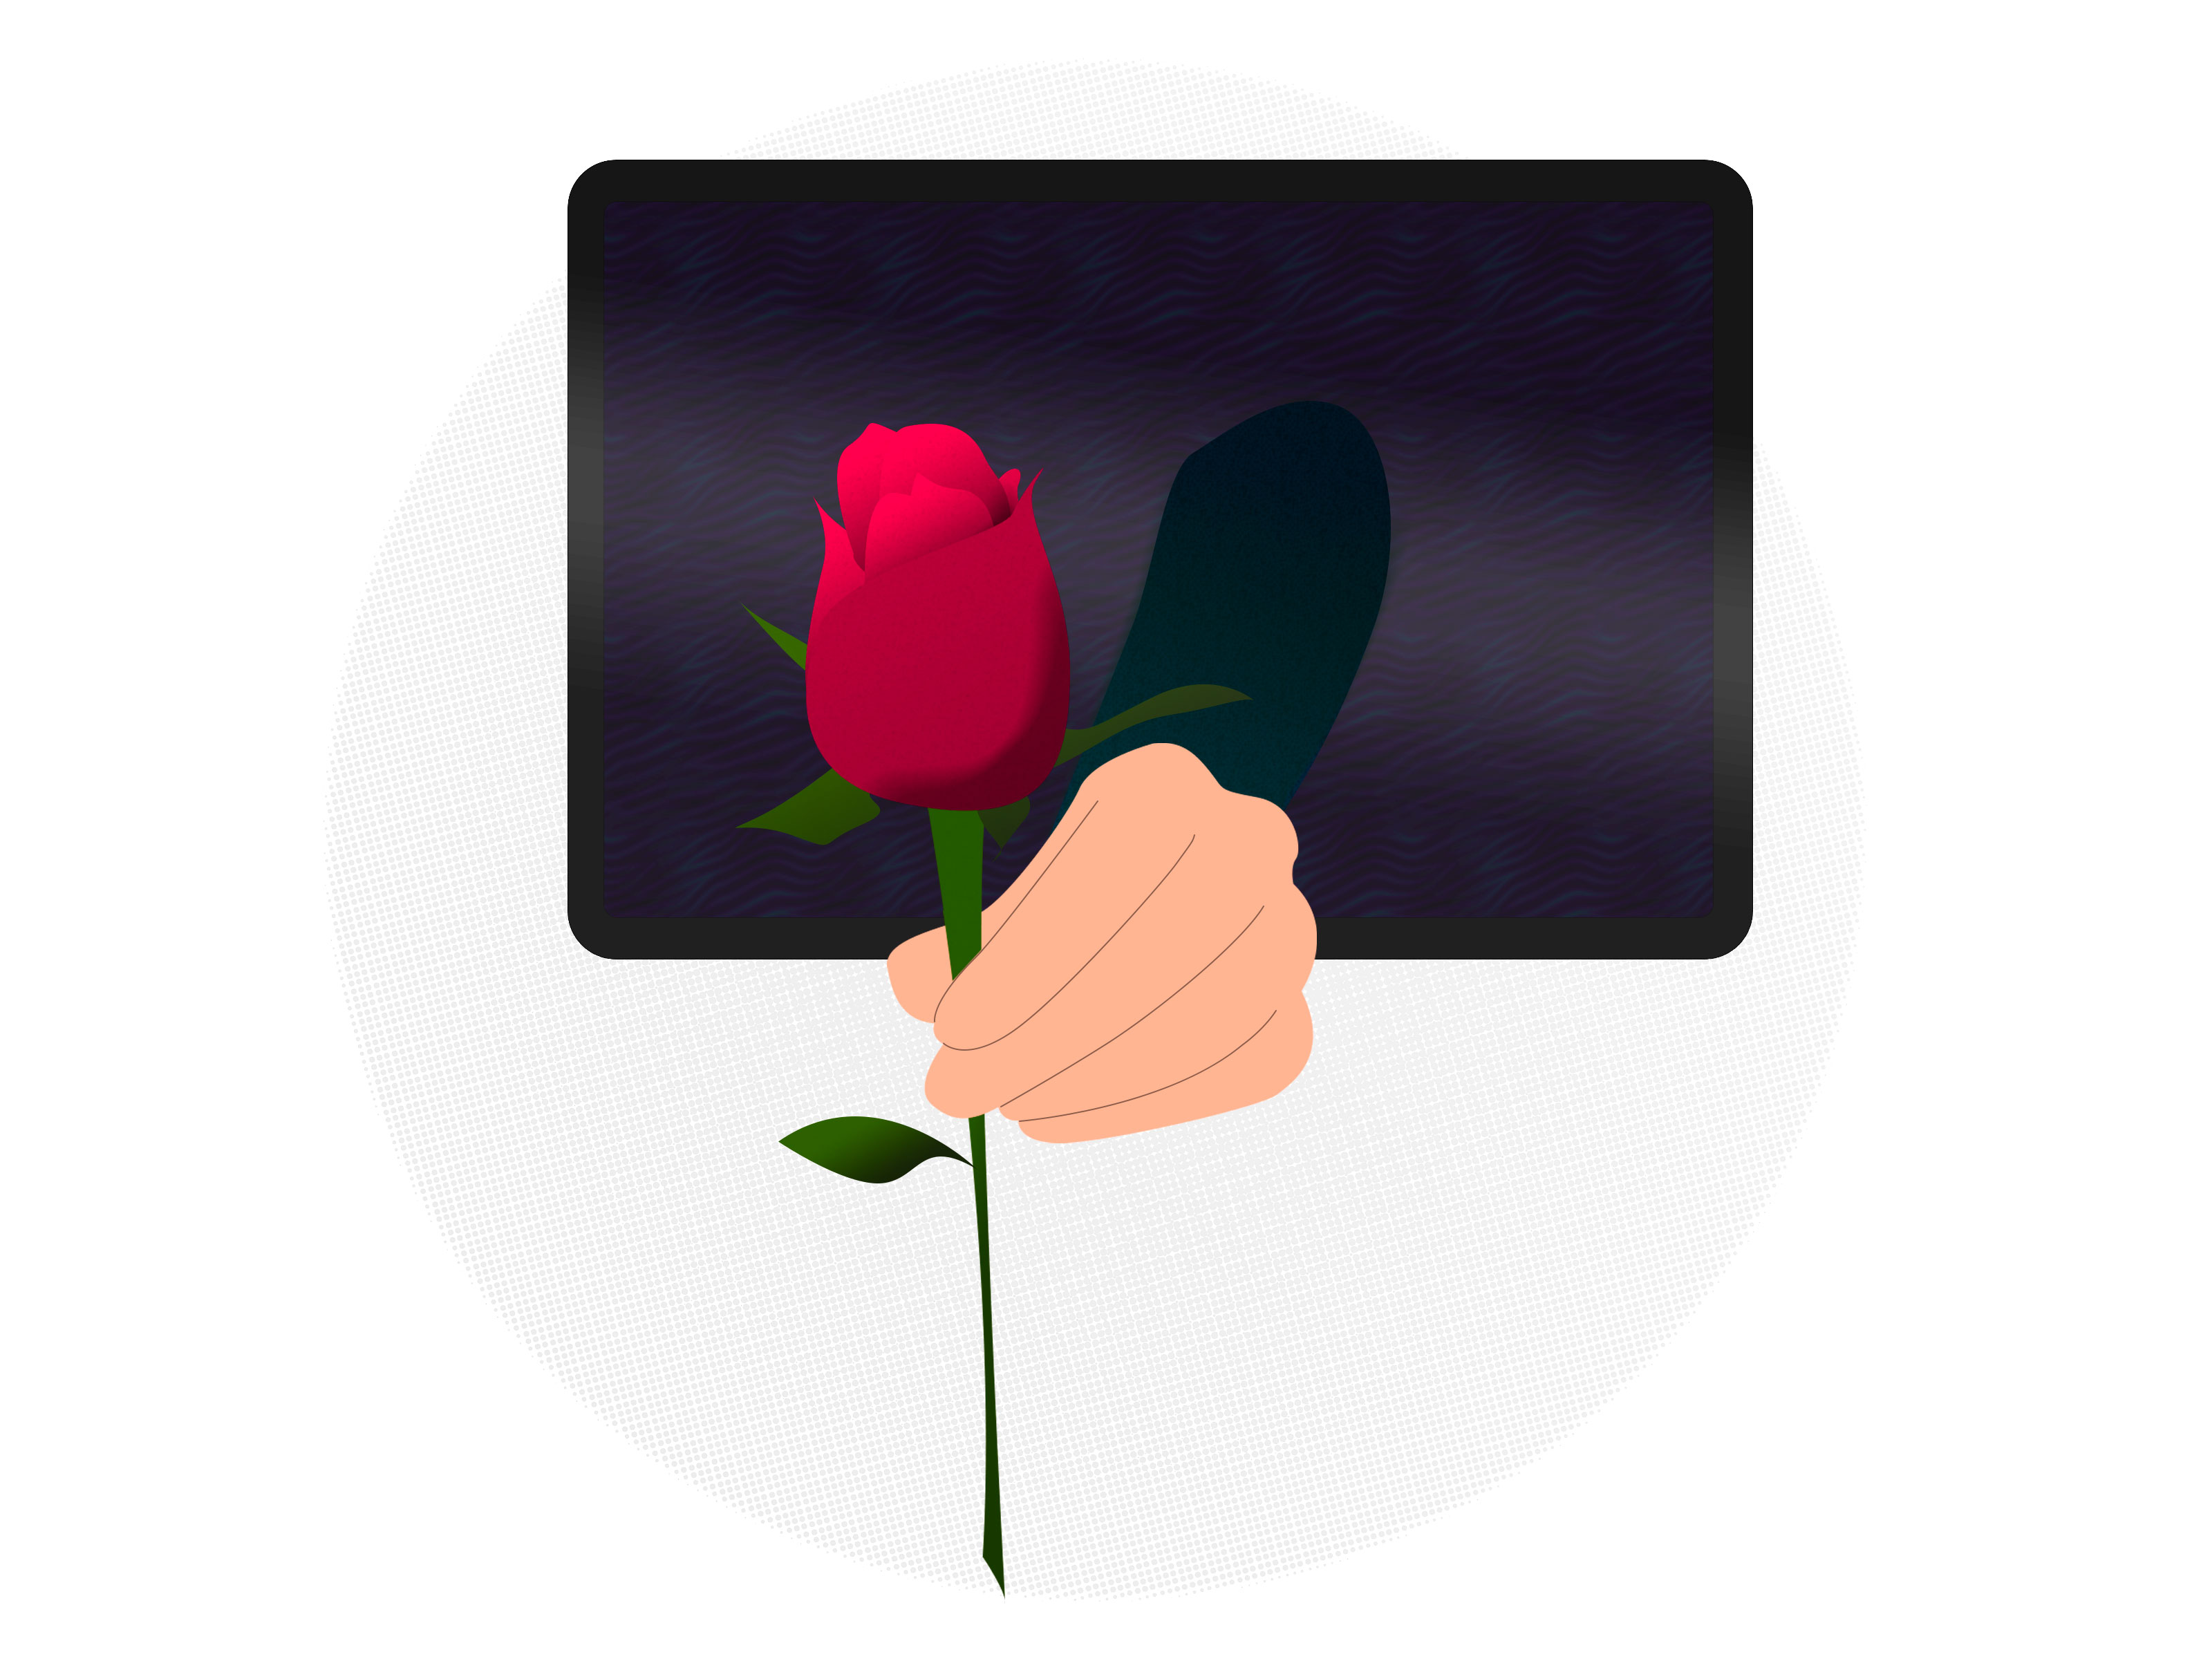 An illustrated hand reaches forth from a TV screen, holding a rose